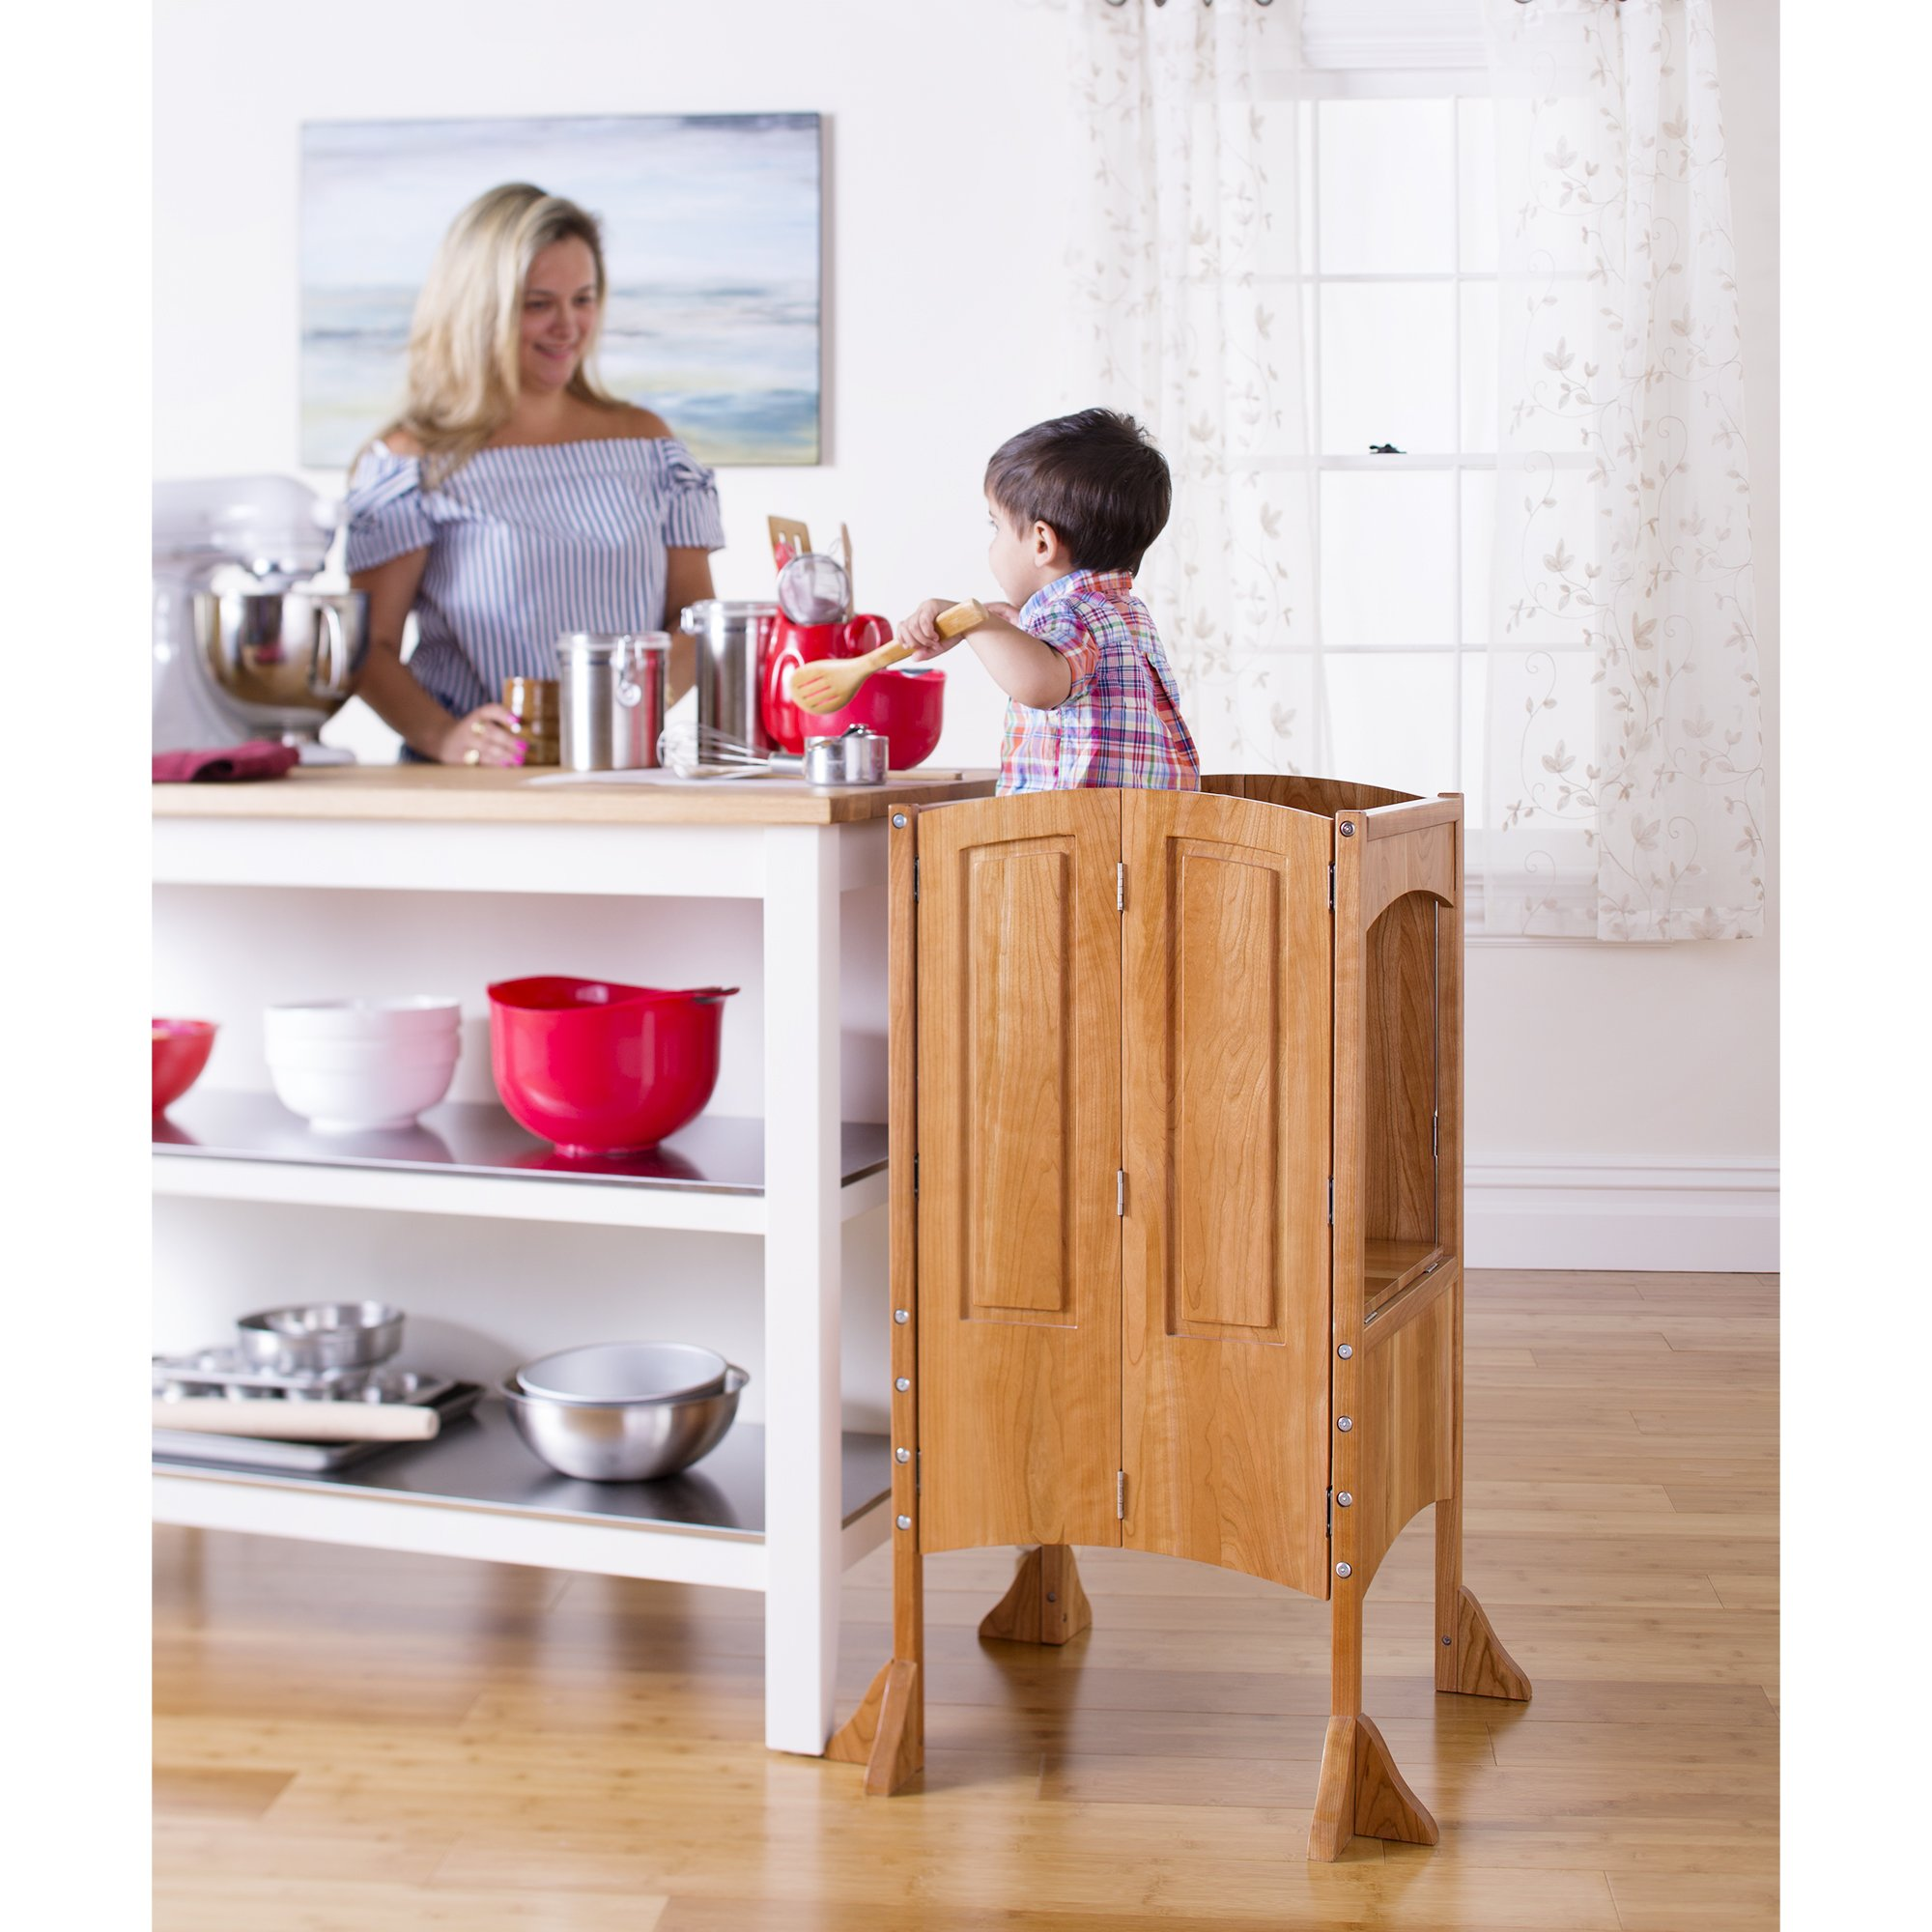 Pleasing Cheap Kitchen Stool Height Find Kitchen Stool Height Deals Camellatalisay Diy Chair Ideas Camellatalisaycom